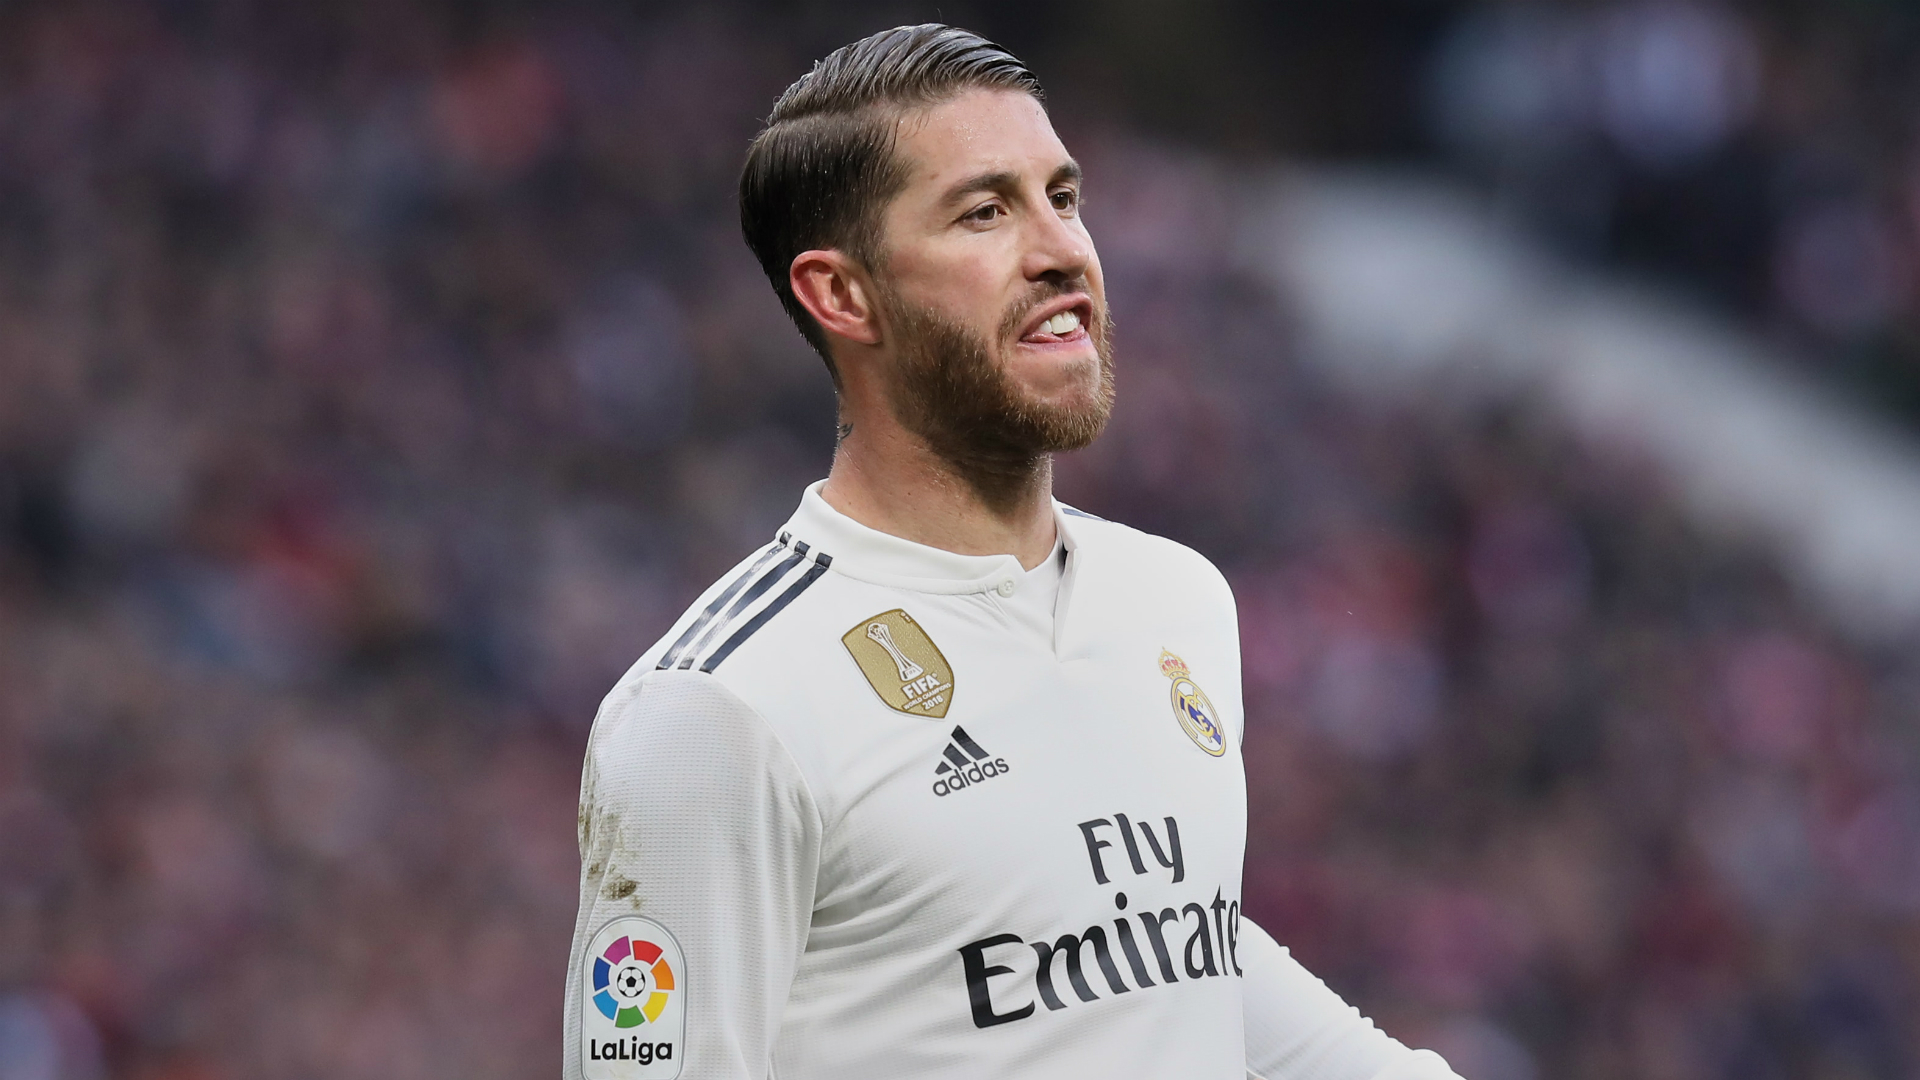 Ramos talks Ajax booking, Perez clash and Solari future in Instagram interview